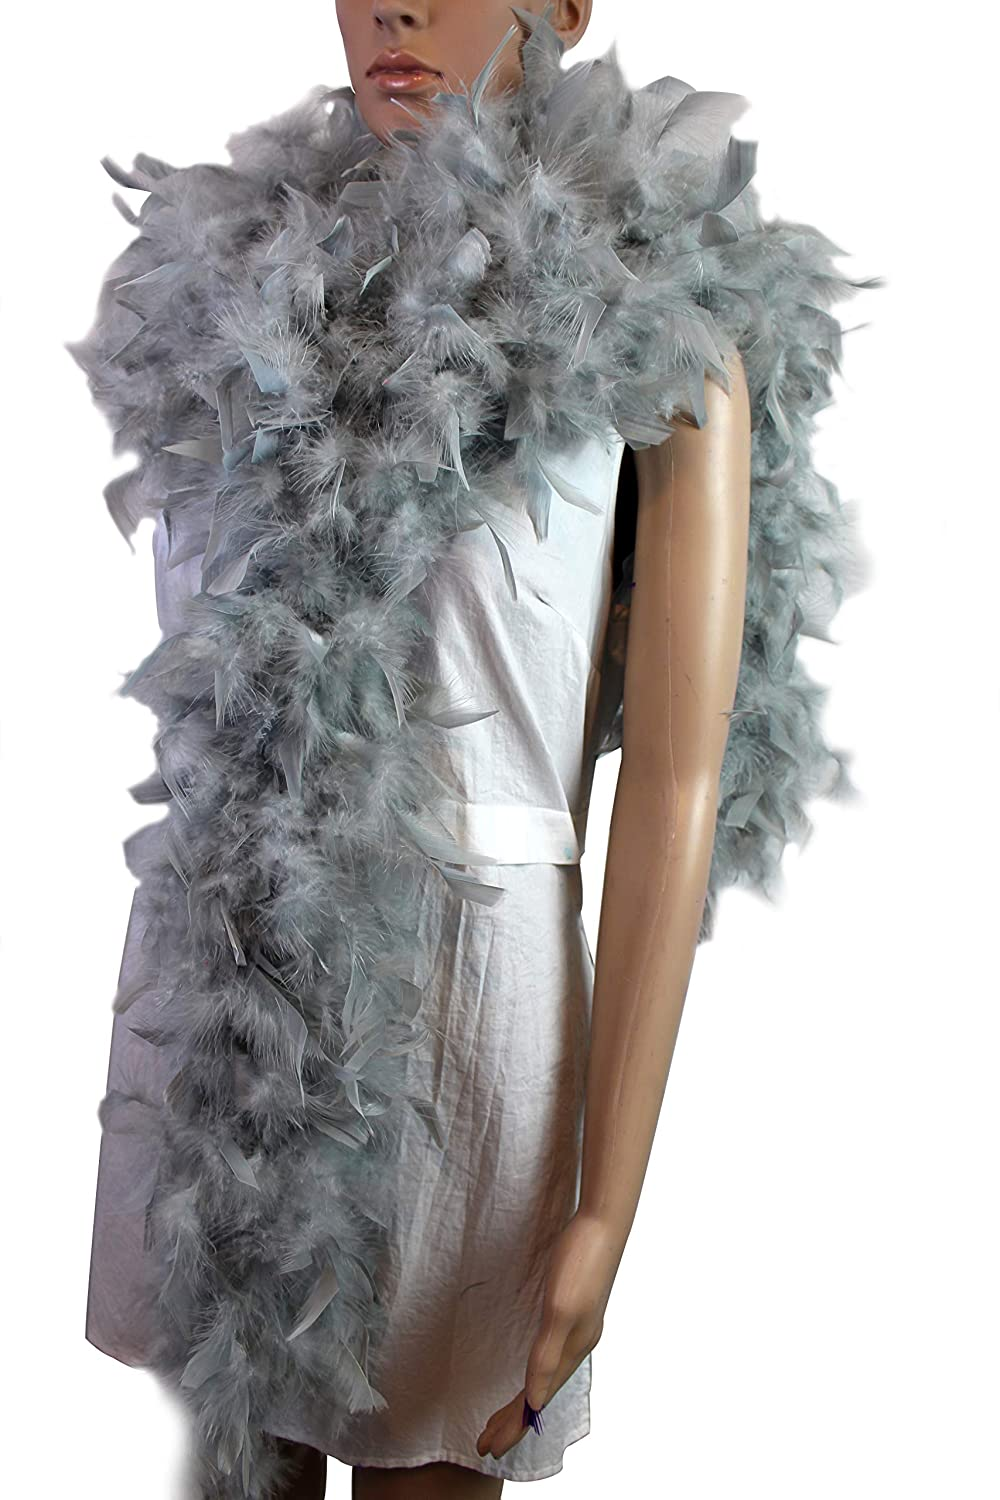 White Costume Great for Party 100 Gram 2 Yard Long Chandelle Feather Boa Over 10 Colors Wedding